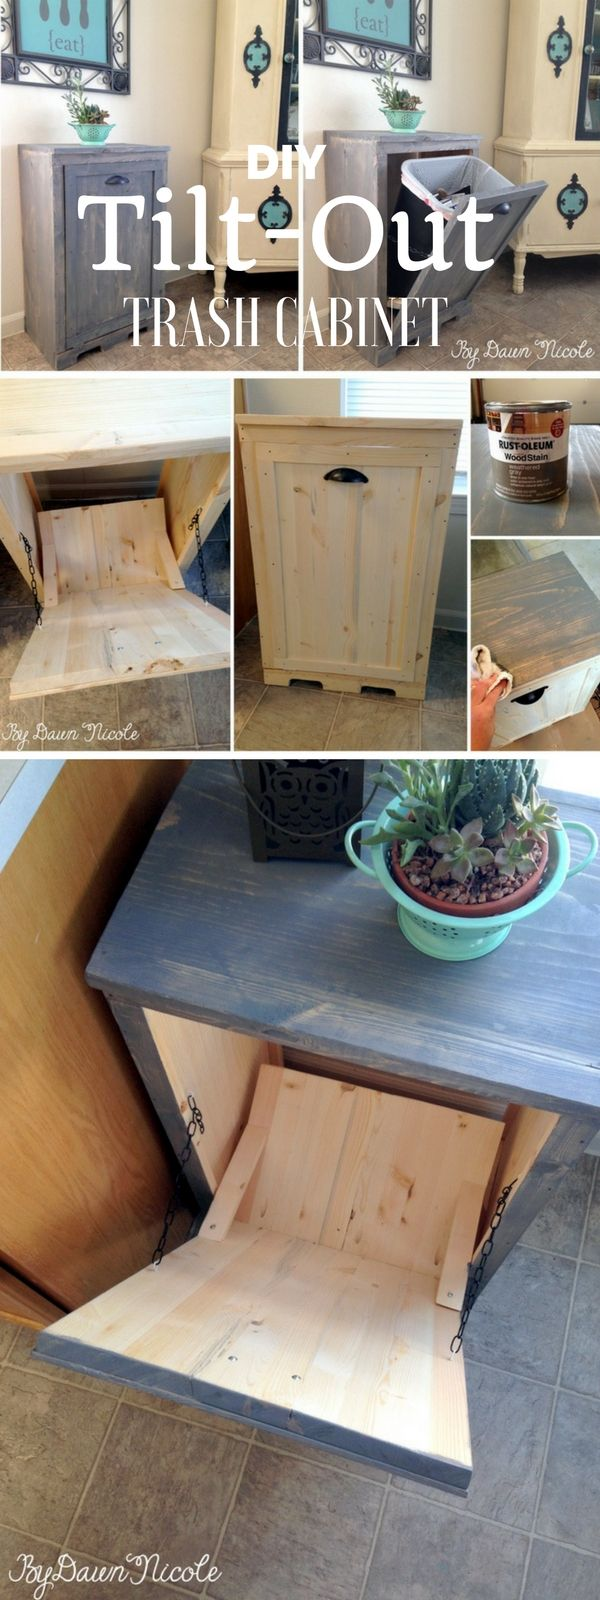 Check out the tutorial for DIY Tilt Out Trash Cabinet @istandarddesign